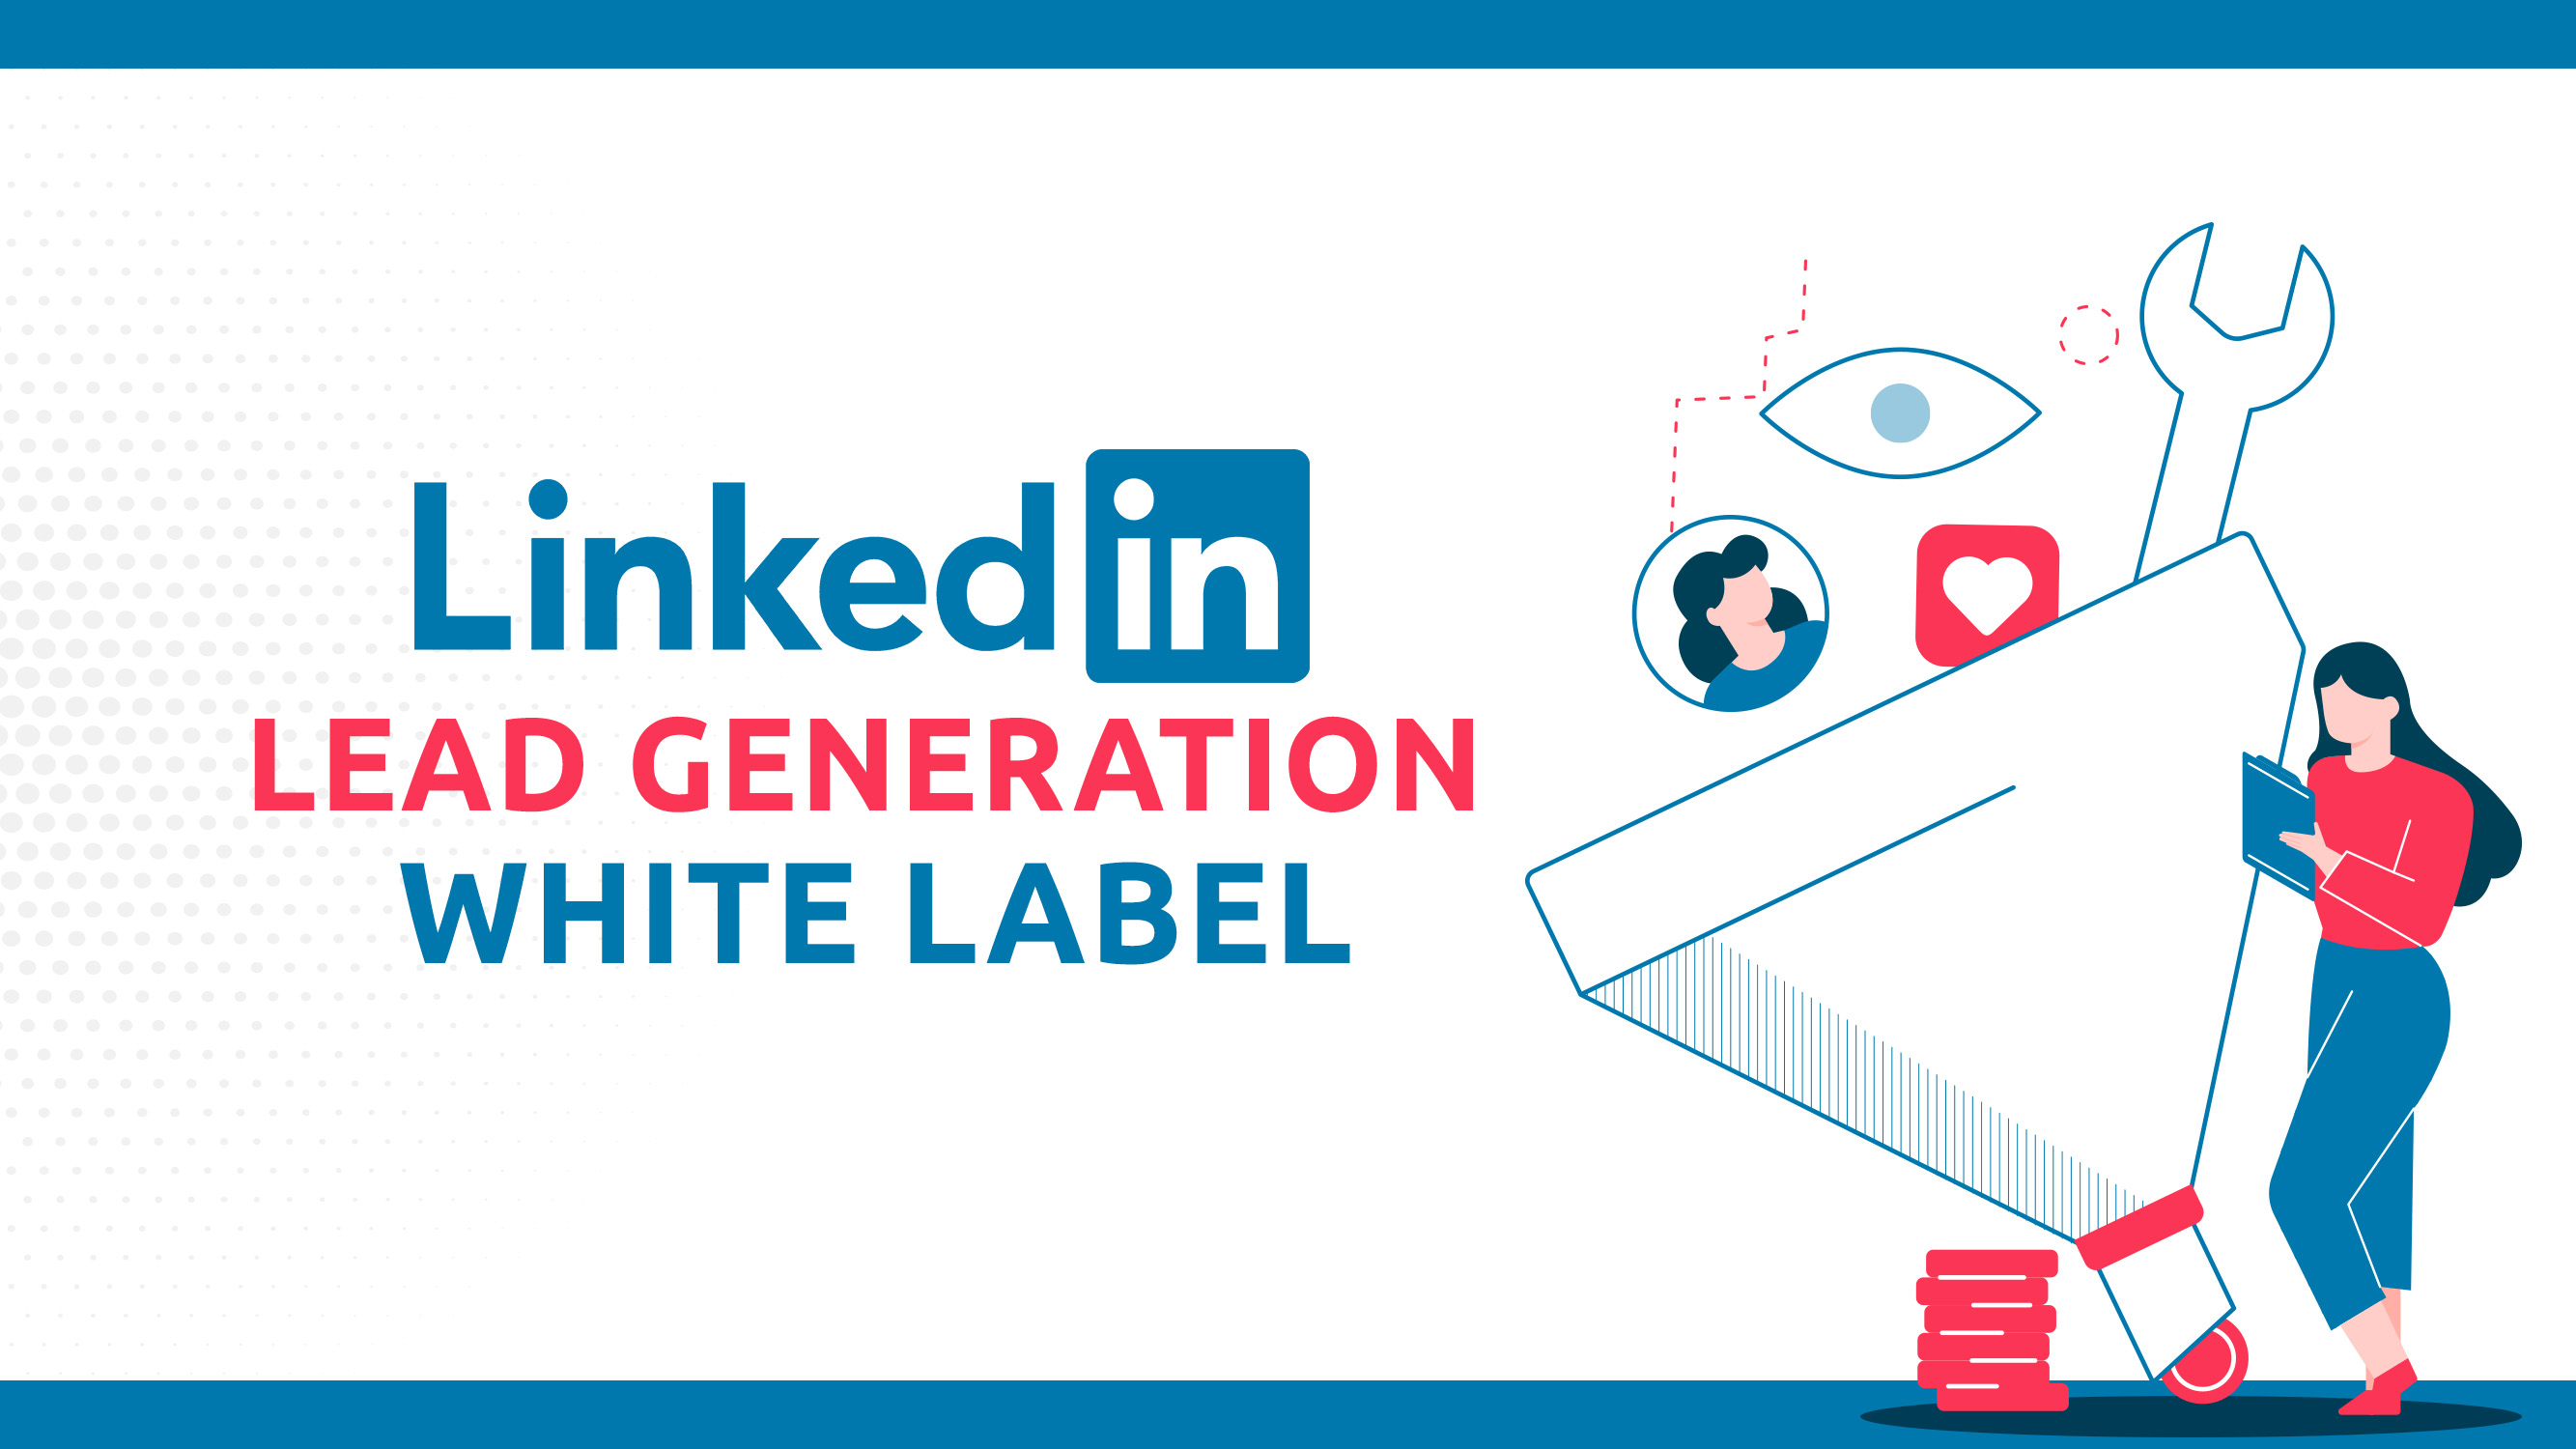 LinkedIn Lead Generation White Label